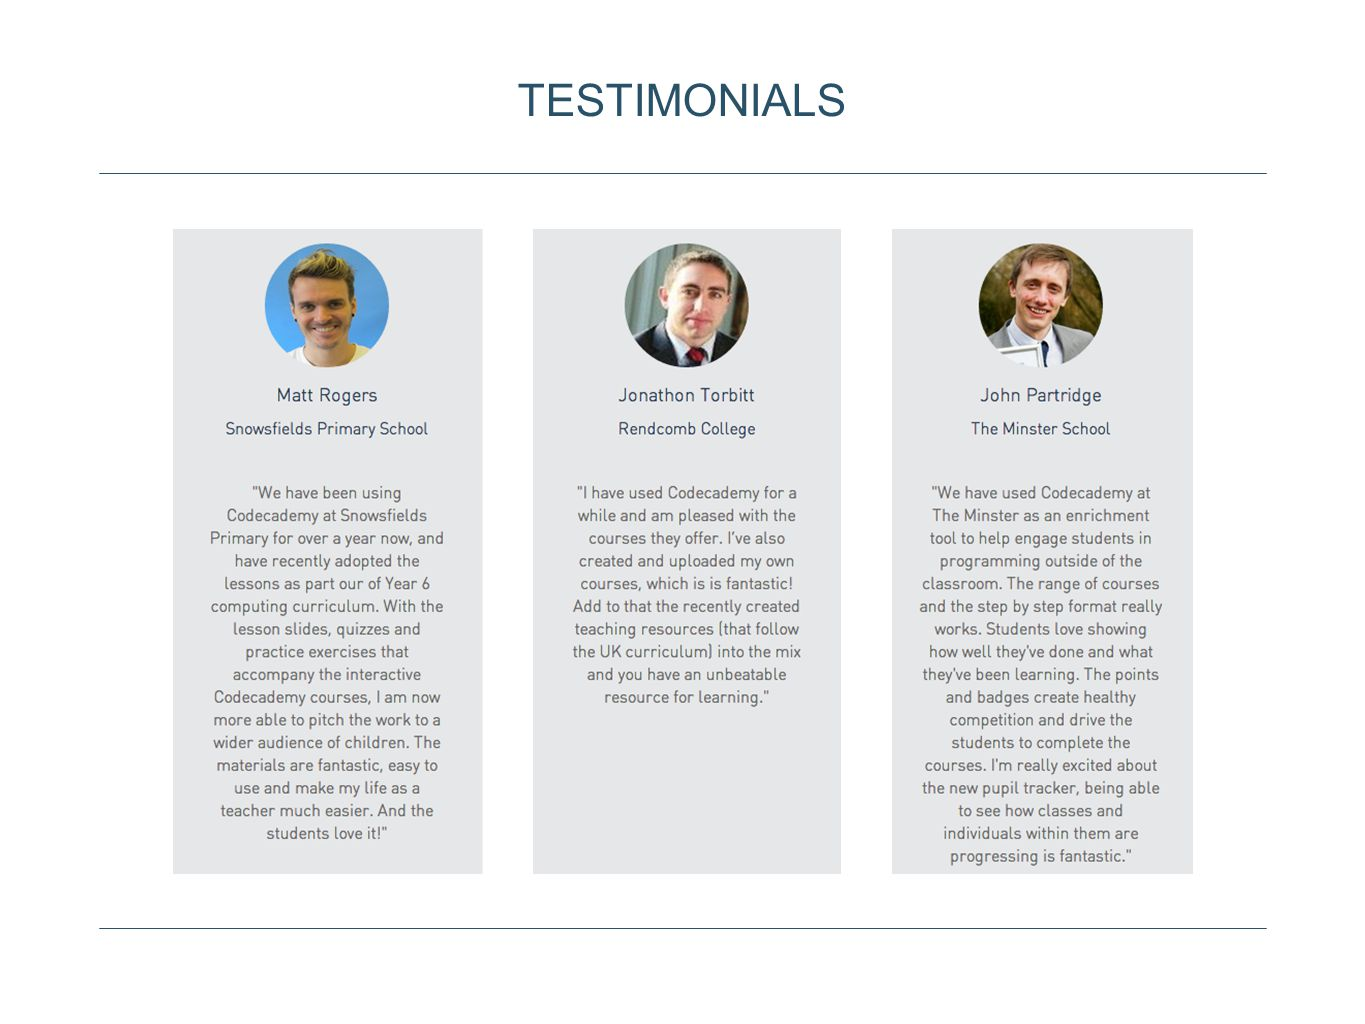 TESTIMONIALS Codecademy is not new to the Classroom.